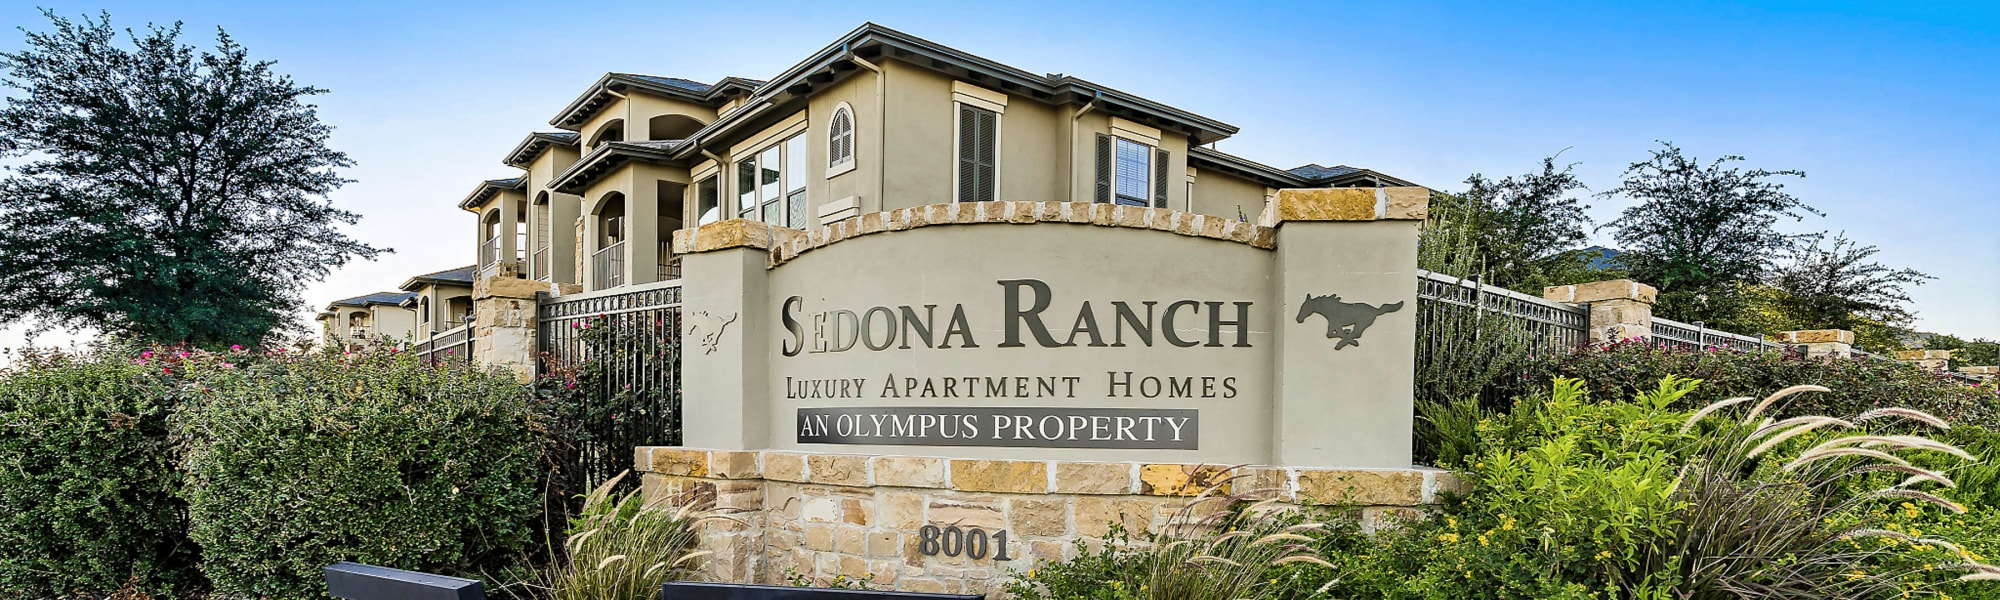 Schedule a tour of Sedona Ranch in Odessa, Texas